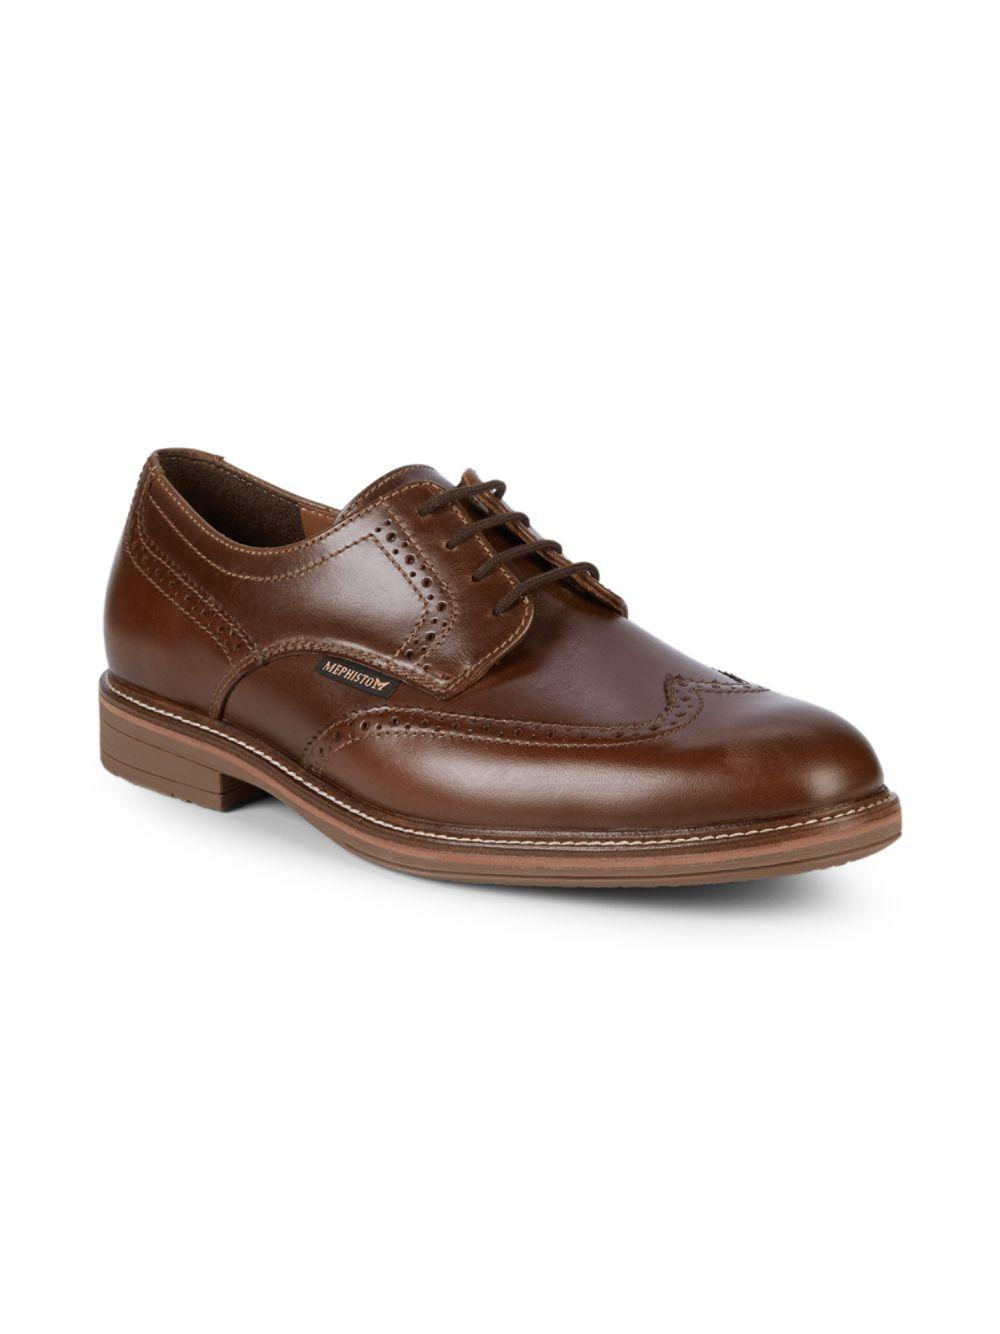 f14ea98fc1f Mephisto Waldo Leather Brogues in Brown for Men - Lyst